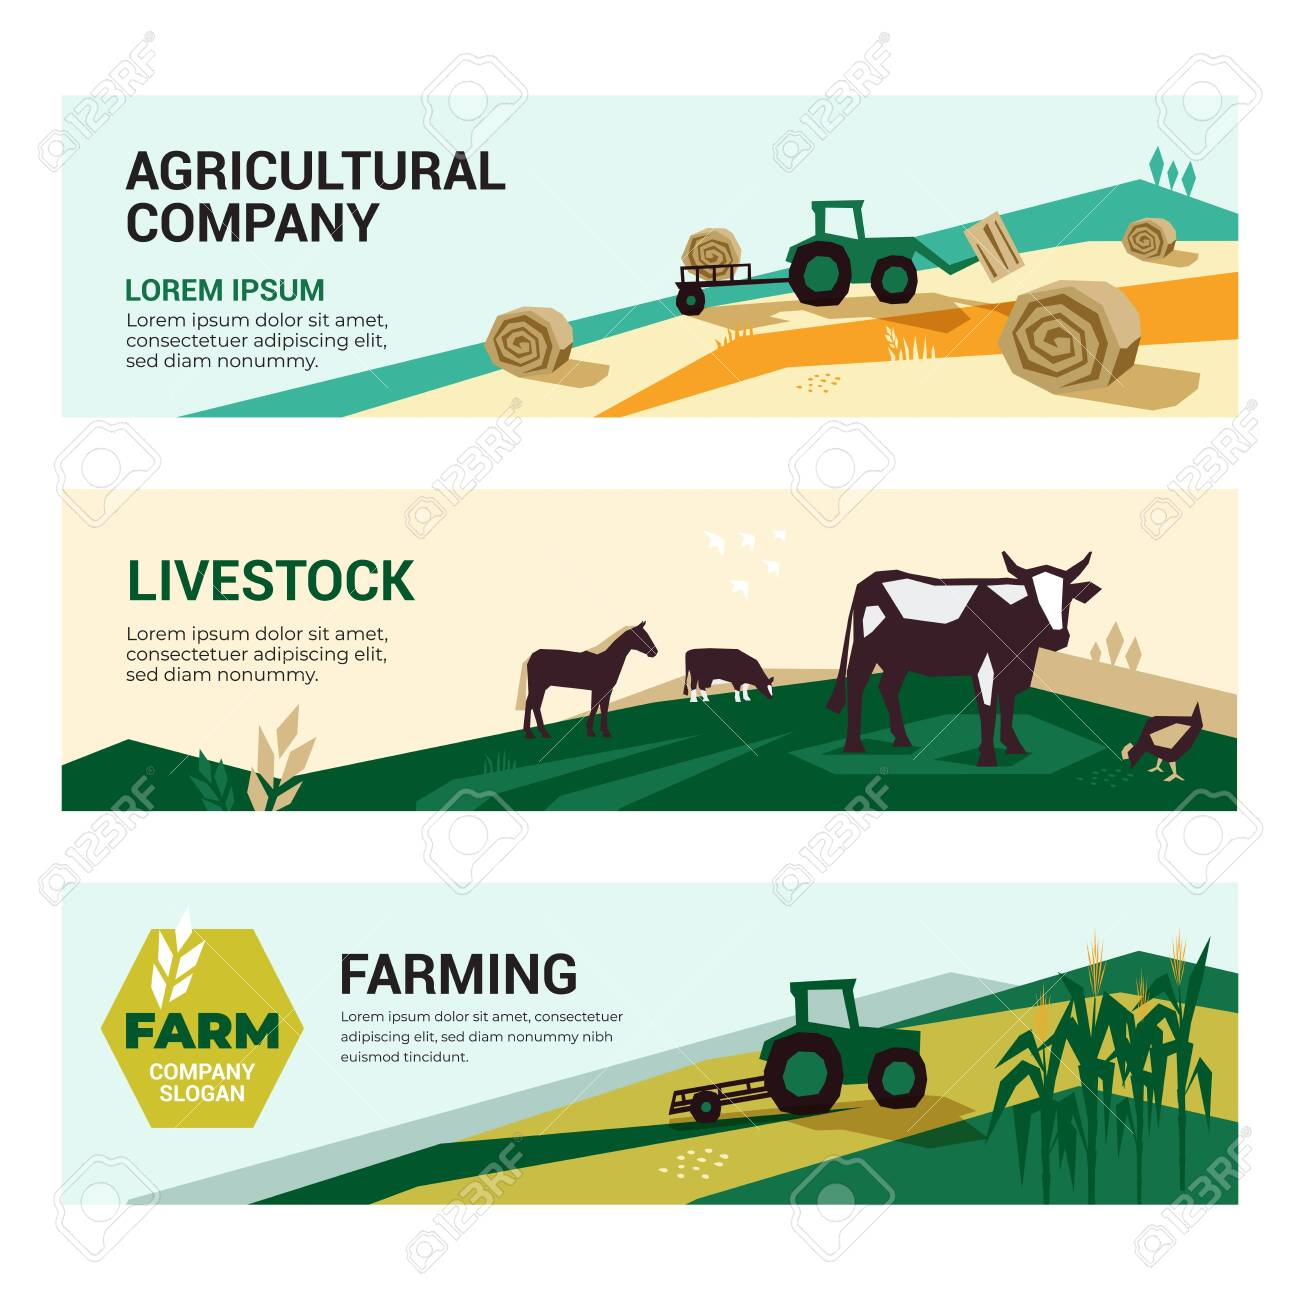 Set Of Illustrations With Agriculture Farming Livestock Harvest Royalty Free Cliparts Vectors And Stock Illustration Image 129133648